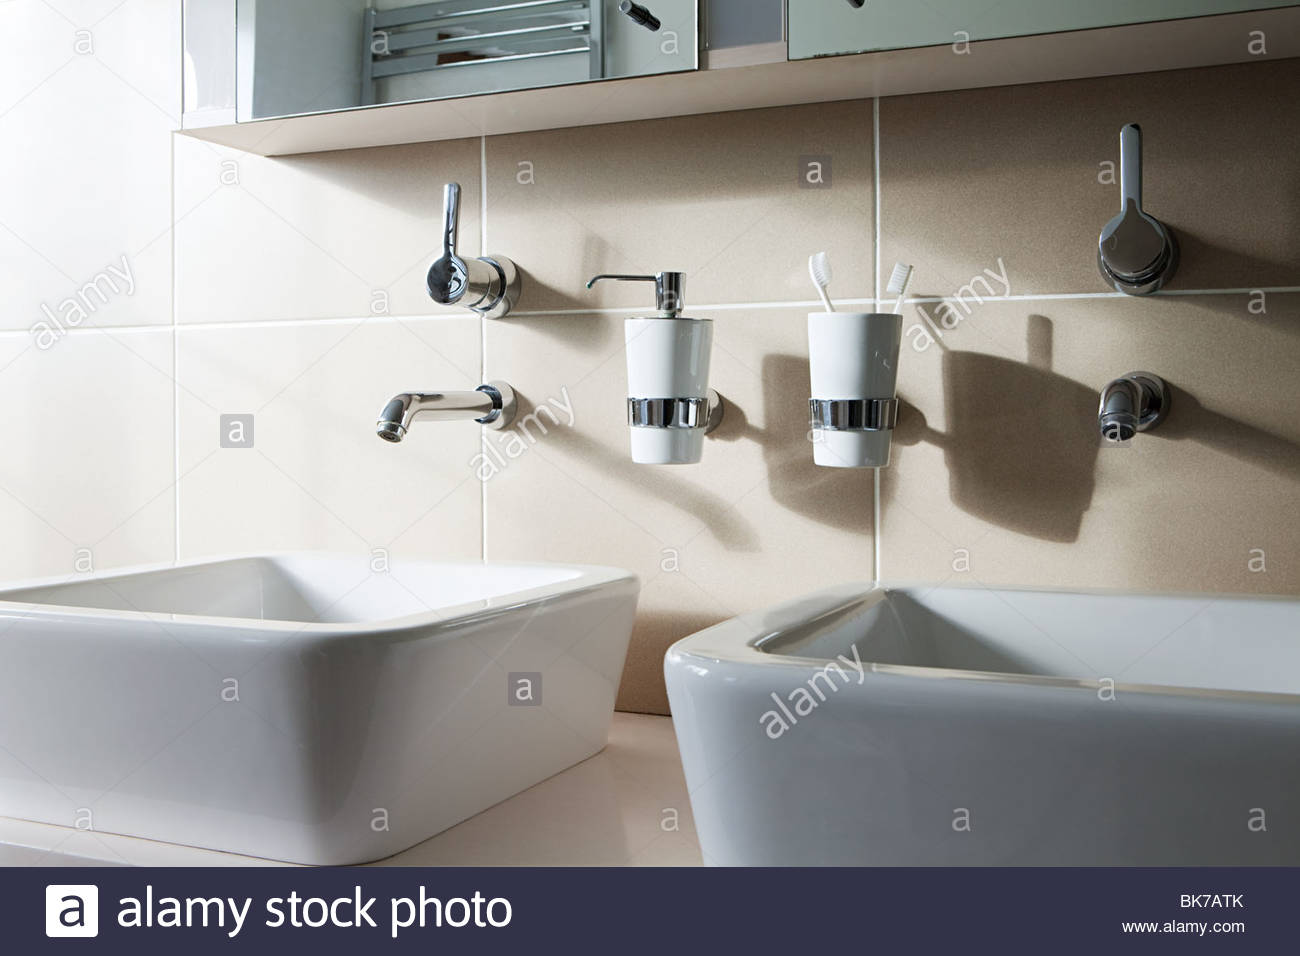 Two sinks - Stock Image